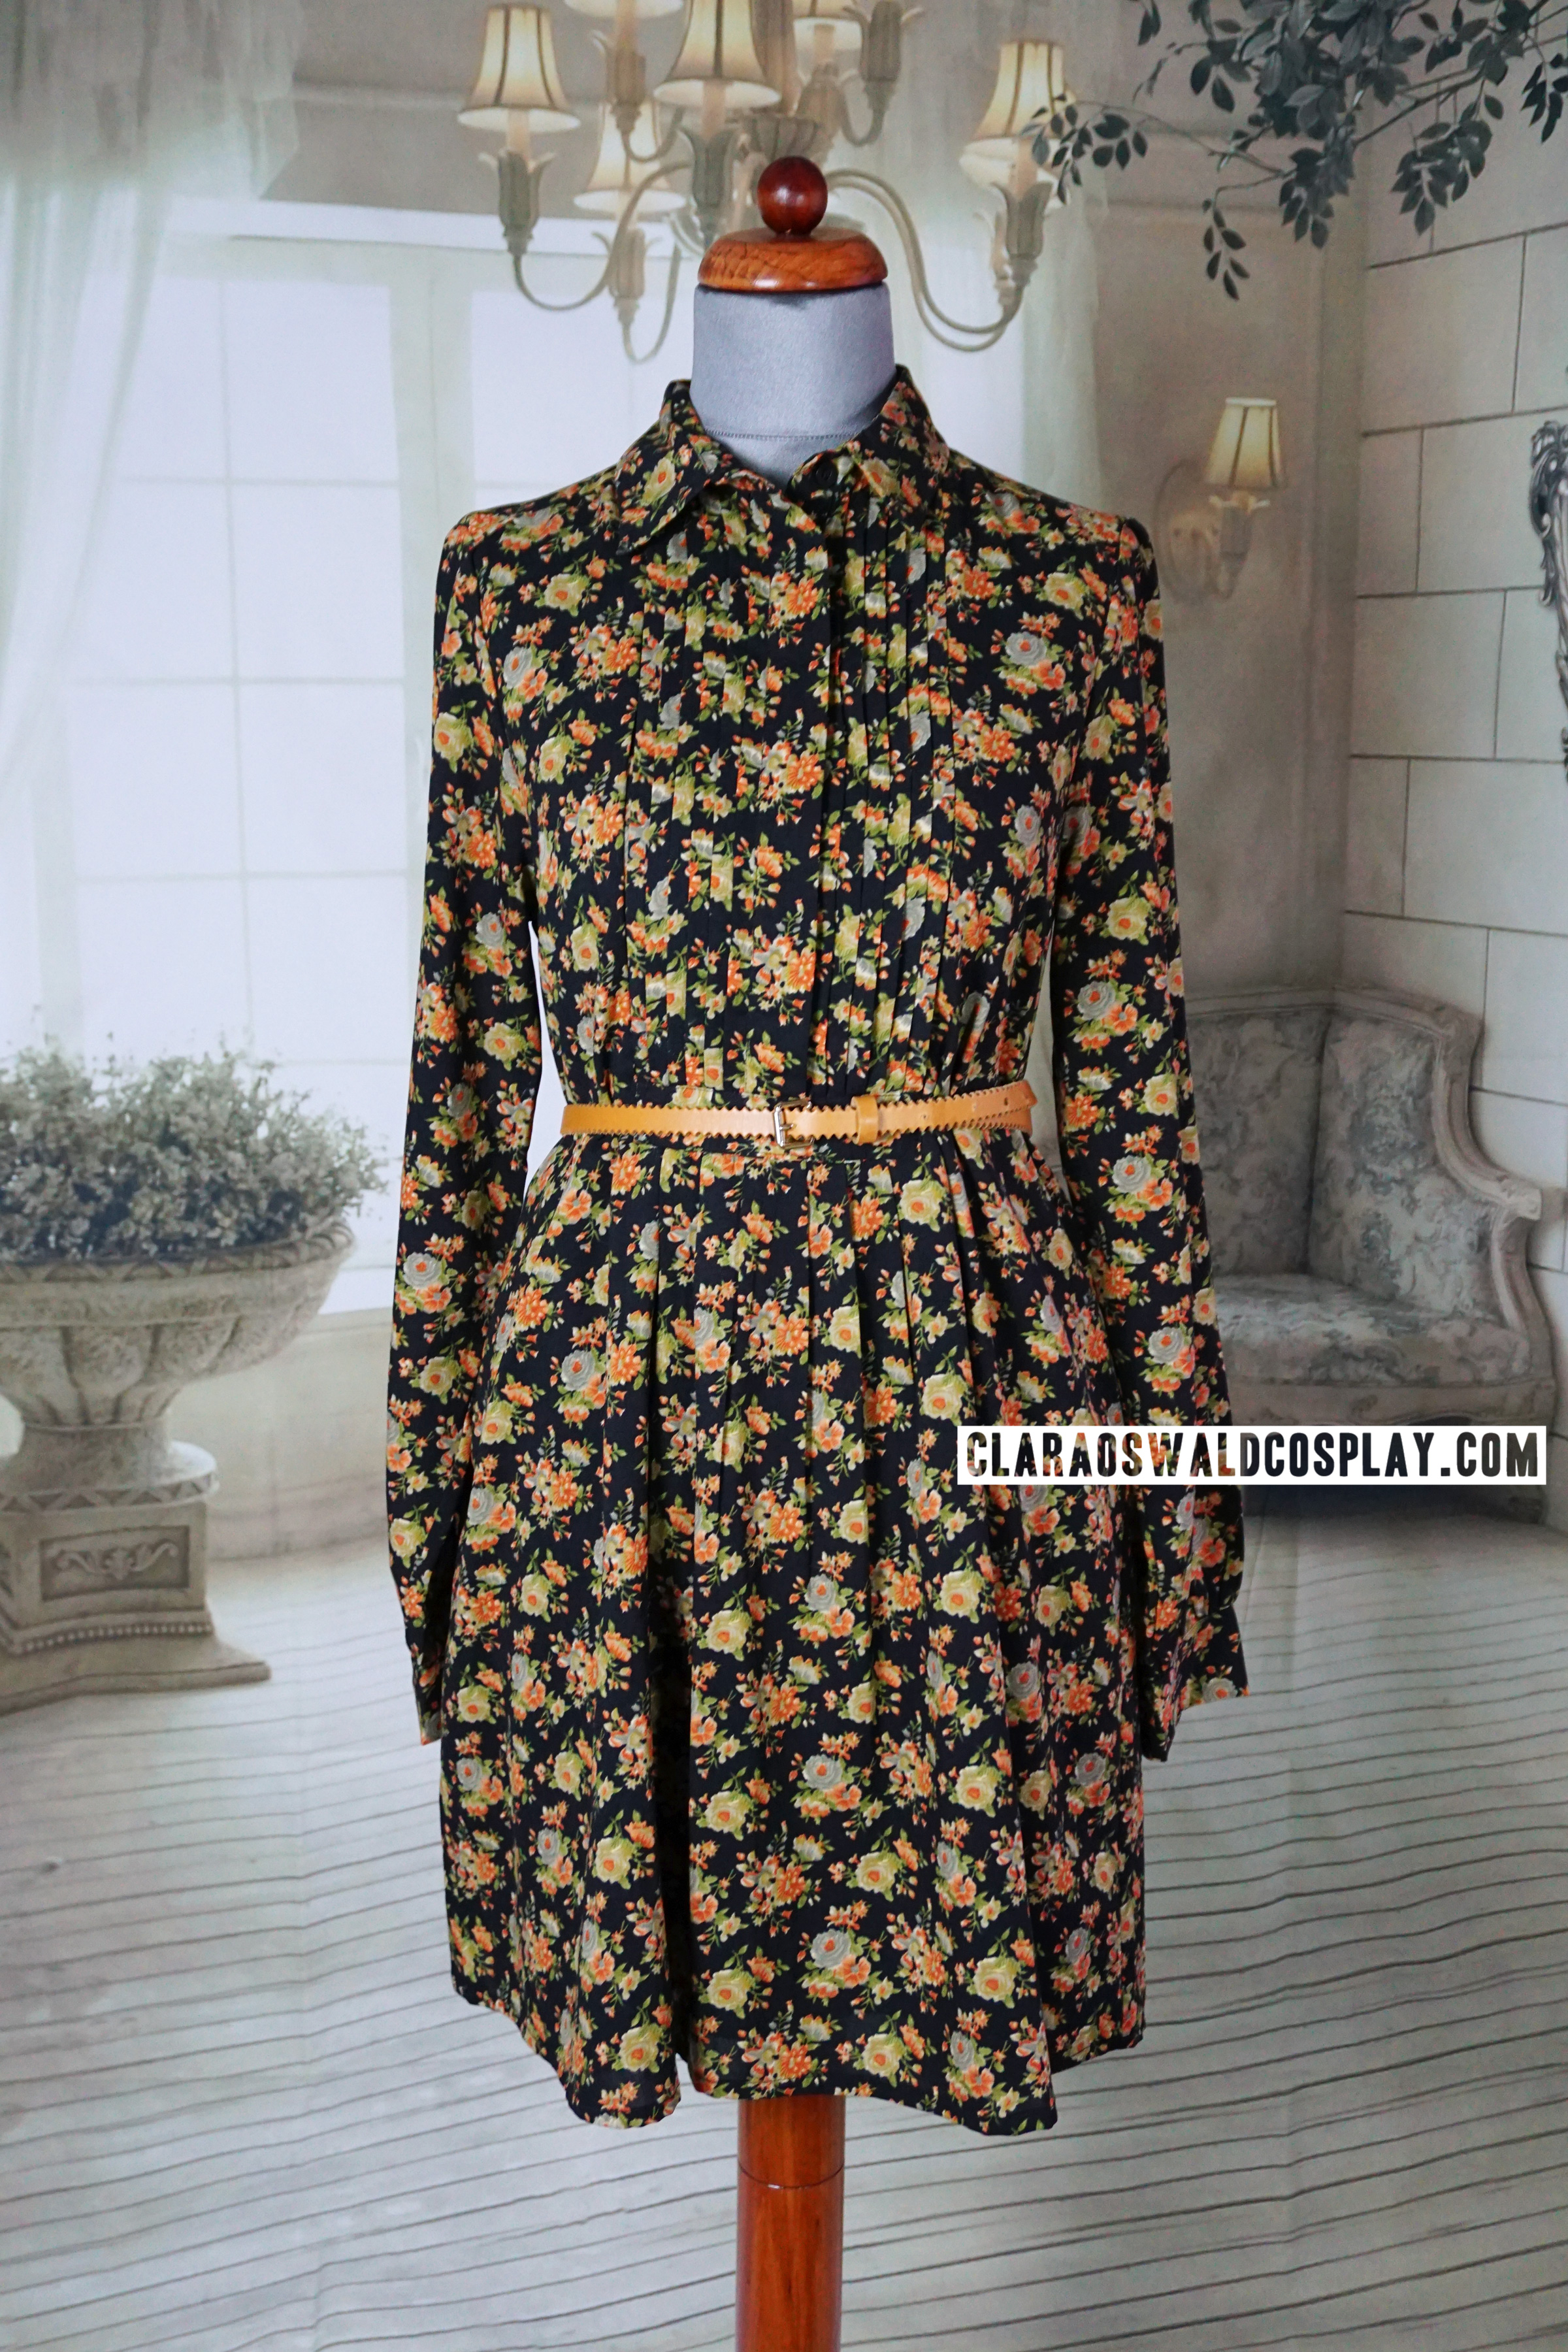 Clara Oswald's ASOS Floral Dress as seen in Kill the Moon